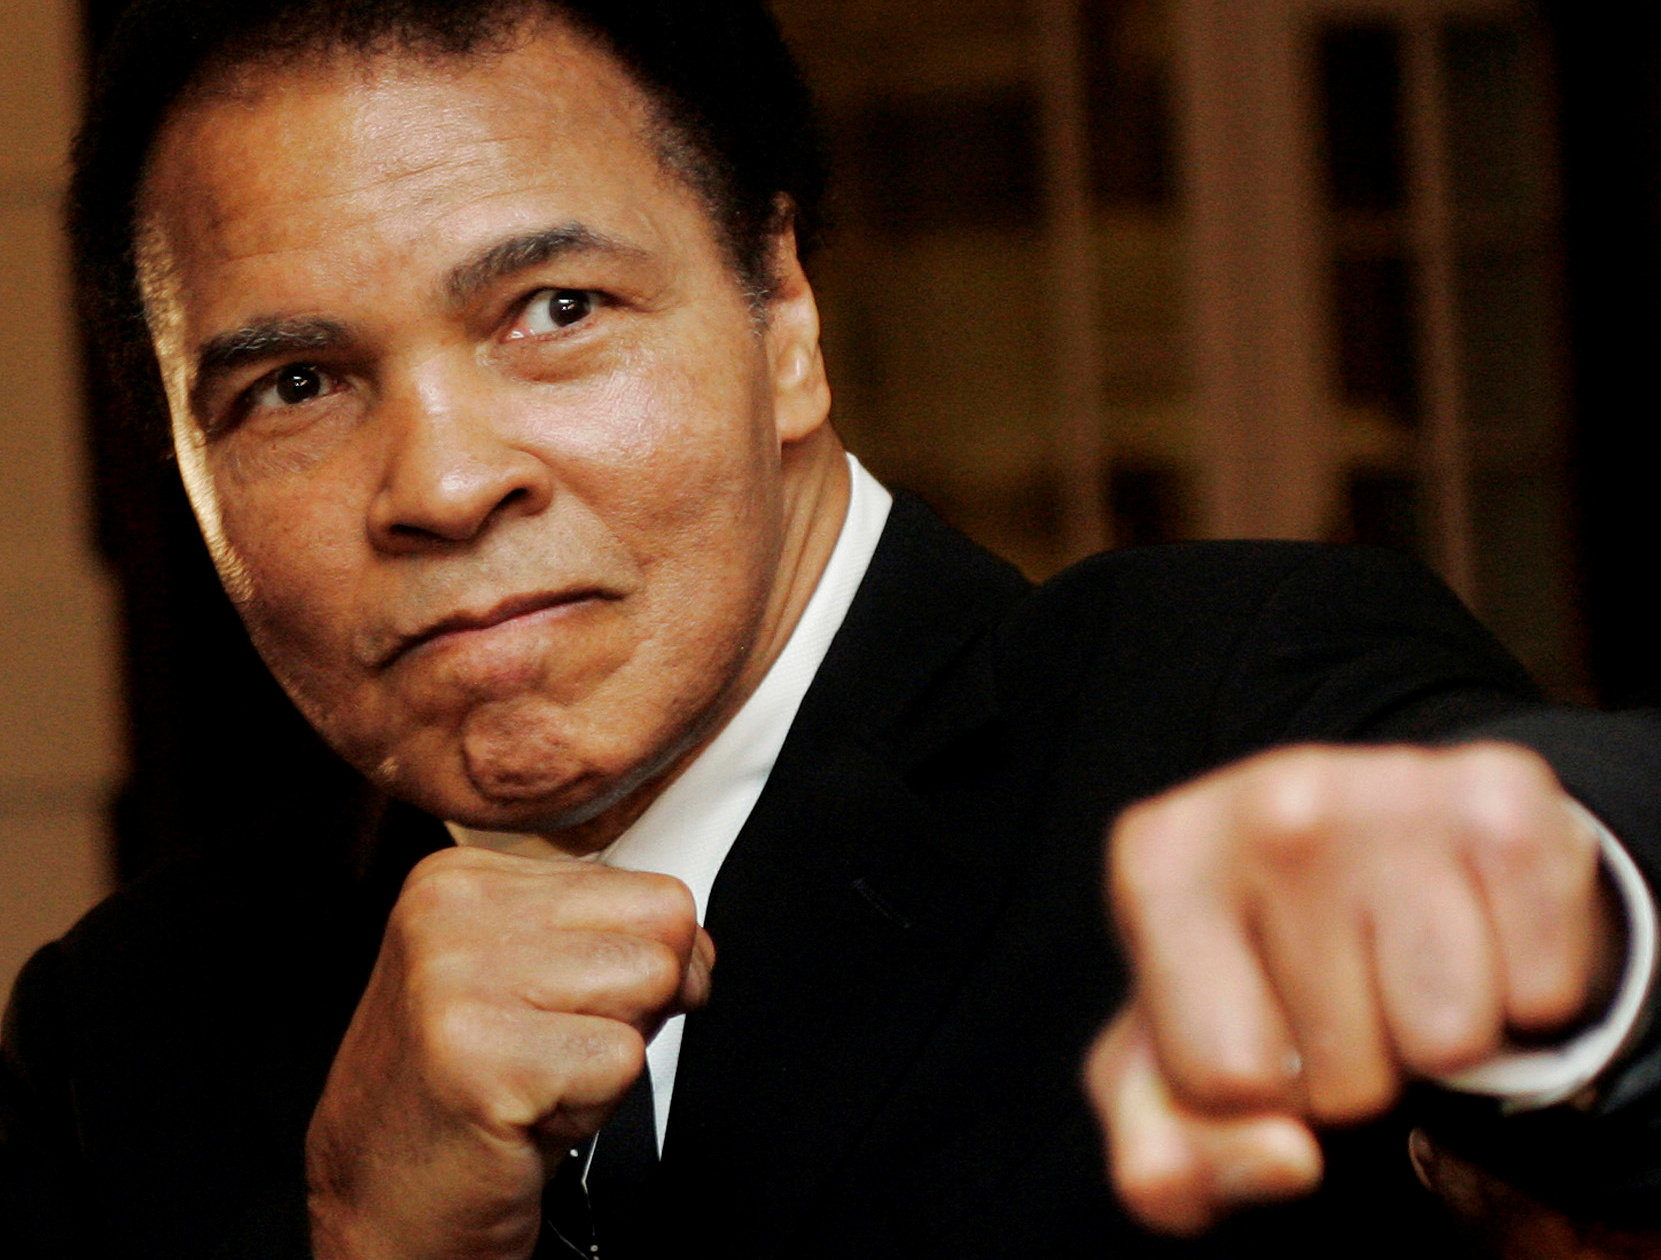 U.S. boxing great Muhammad Ali poses during the Crystal Award ceremony at the World Economic Forum (WEF) in Davos, Switzerland, in this January 28, 2006 photo. REUTERS/Andreas Meier/File Photo